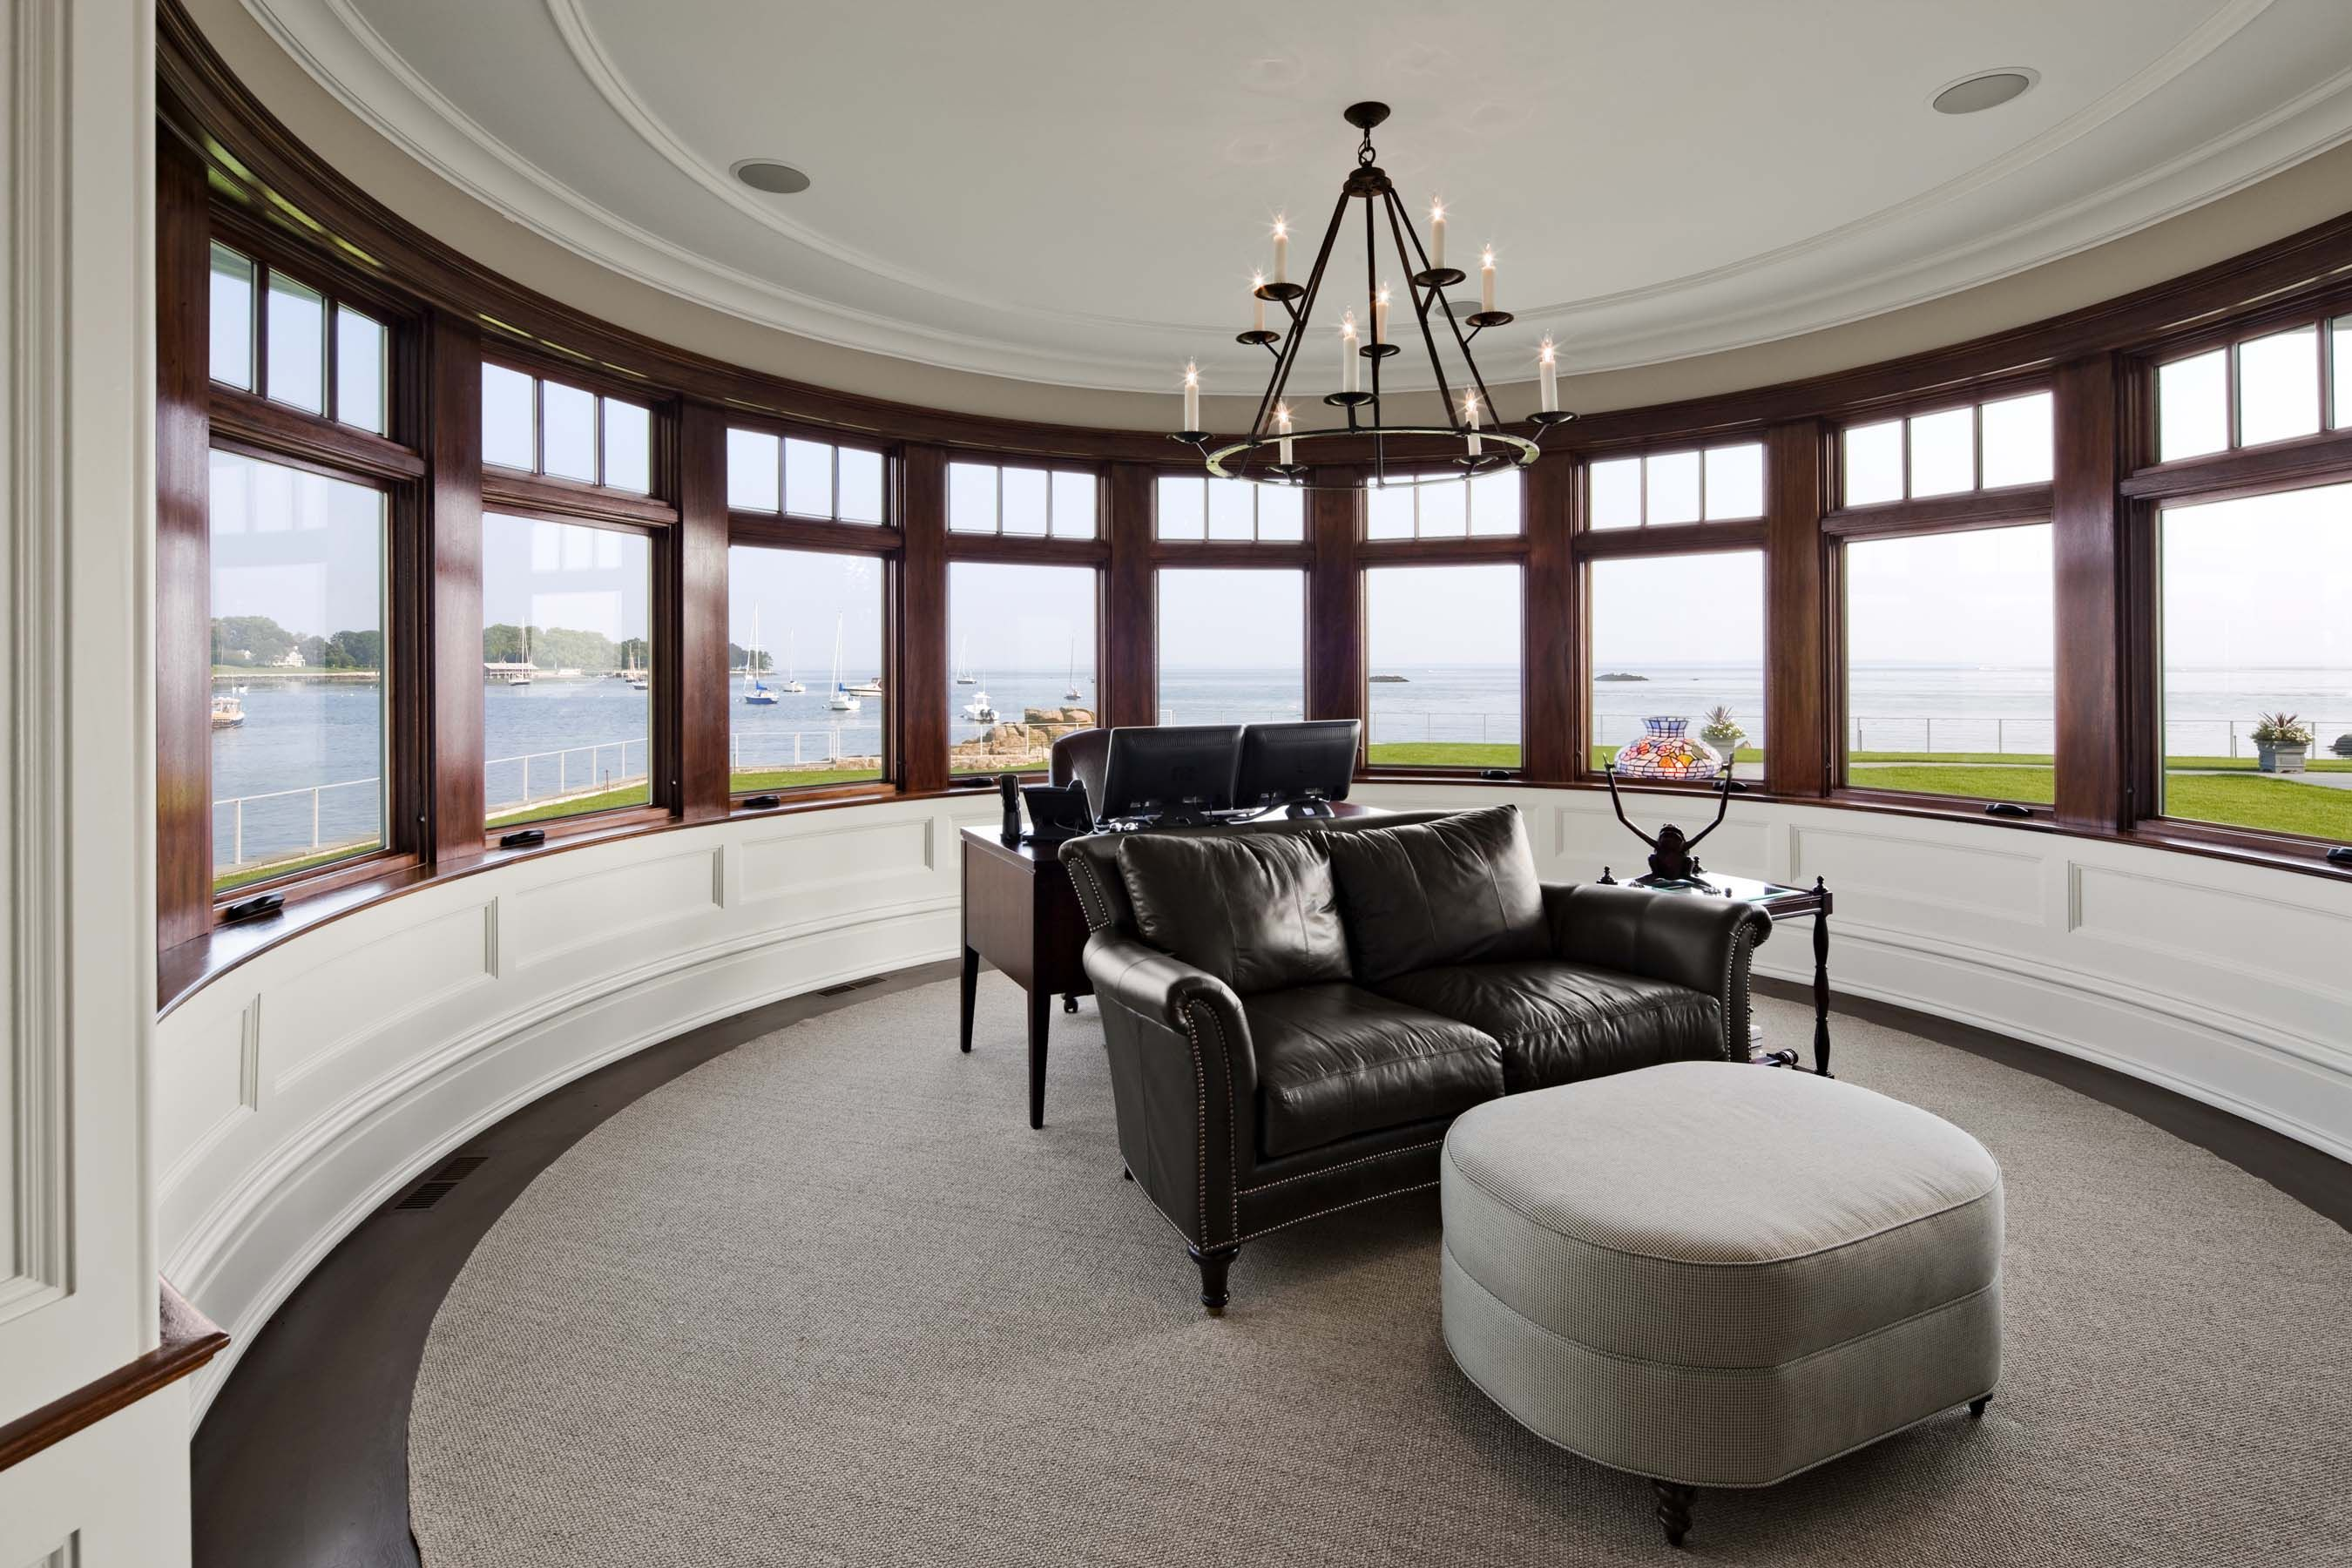 Sunroom Circular Room Degree Ocean View Robert